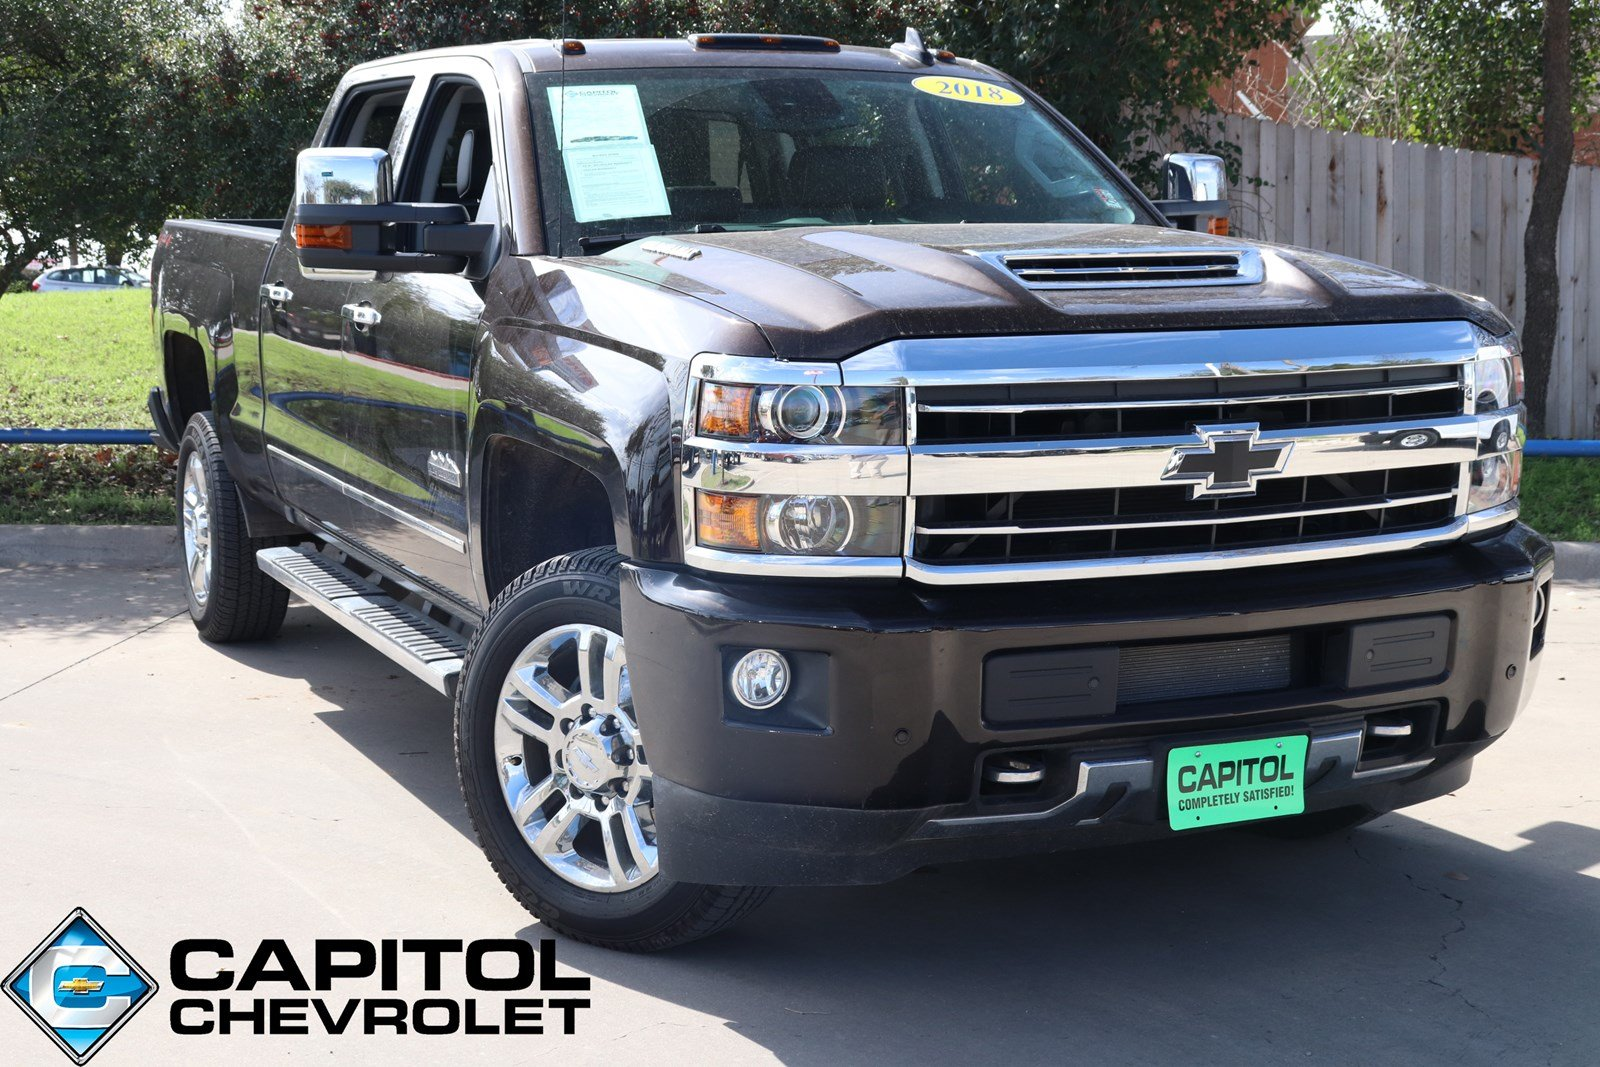 All Chevy chevy 2500hd high country : Pre-Owned 2018 Chevrolet Silverado 2500HD High Country Crew Cab ...